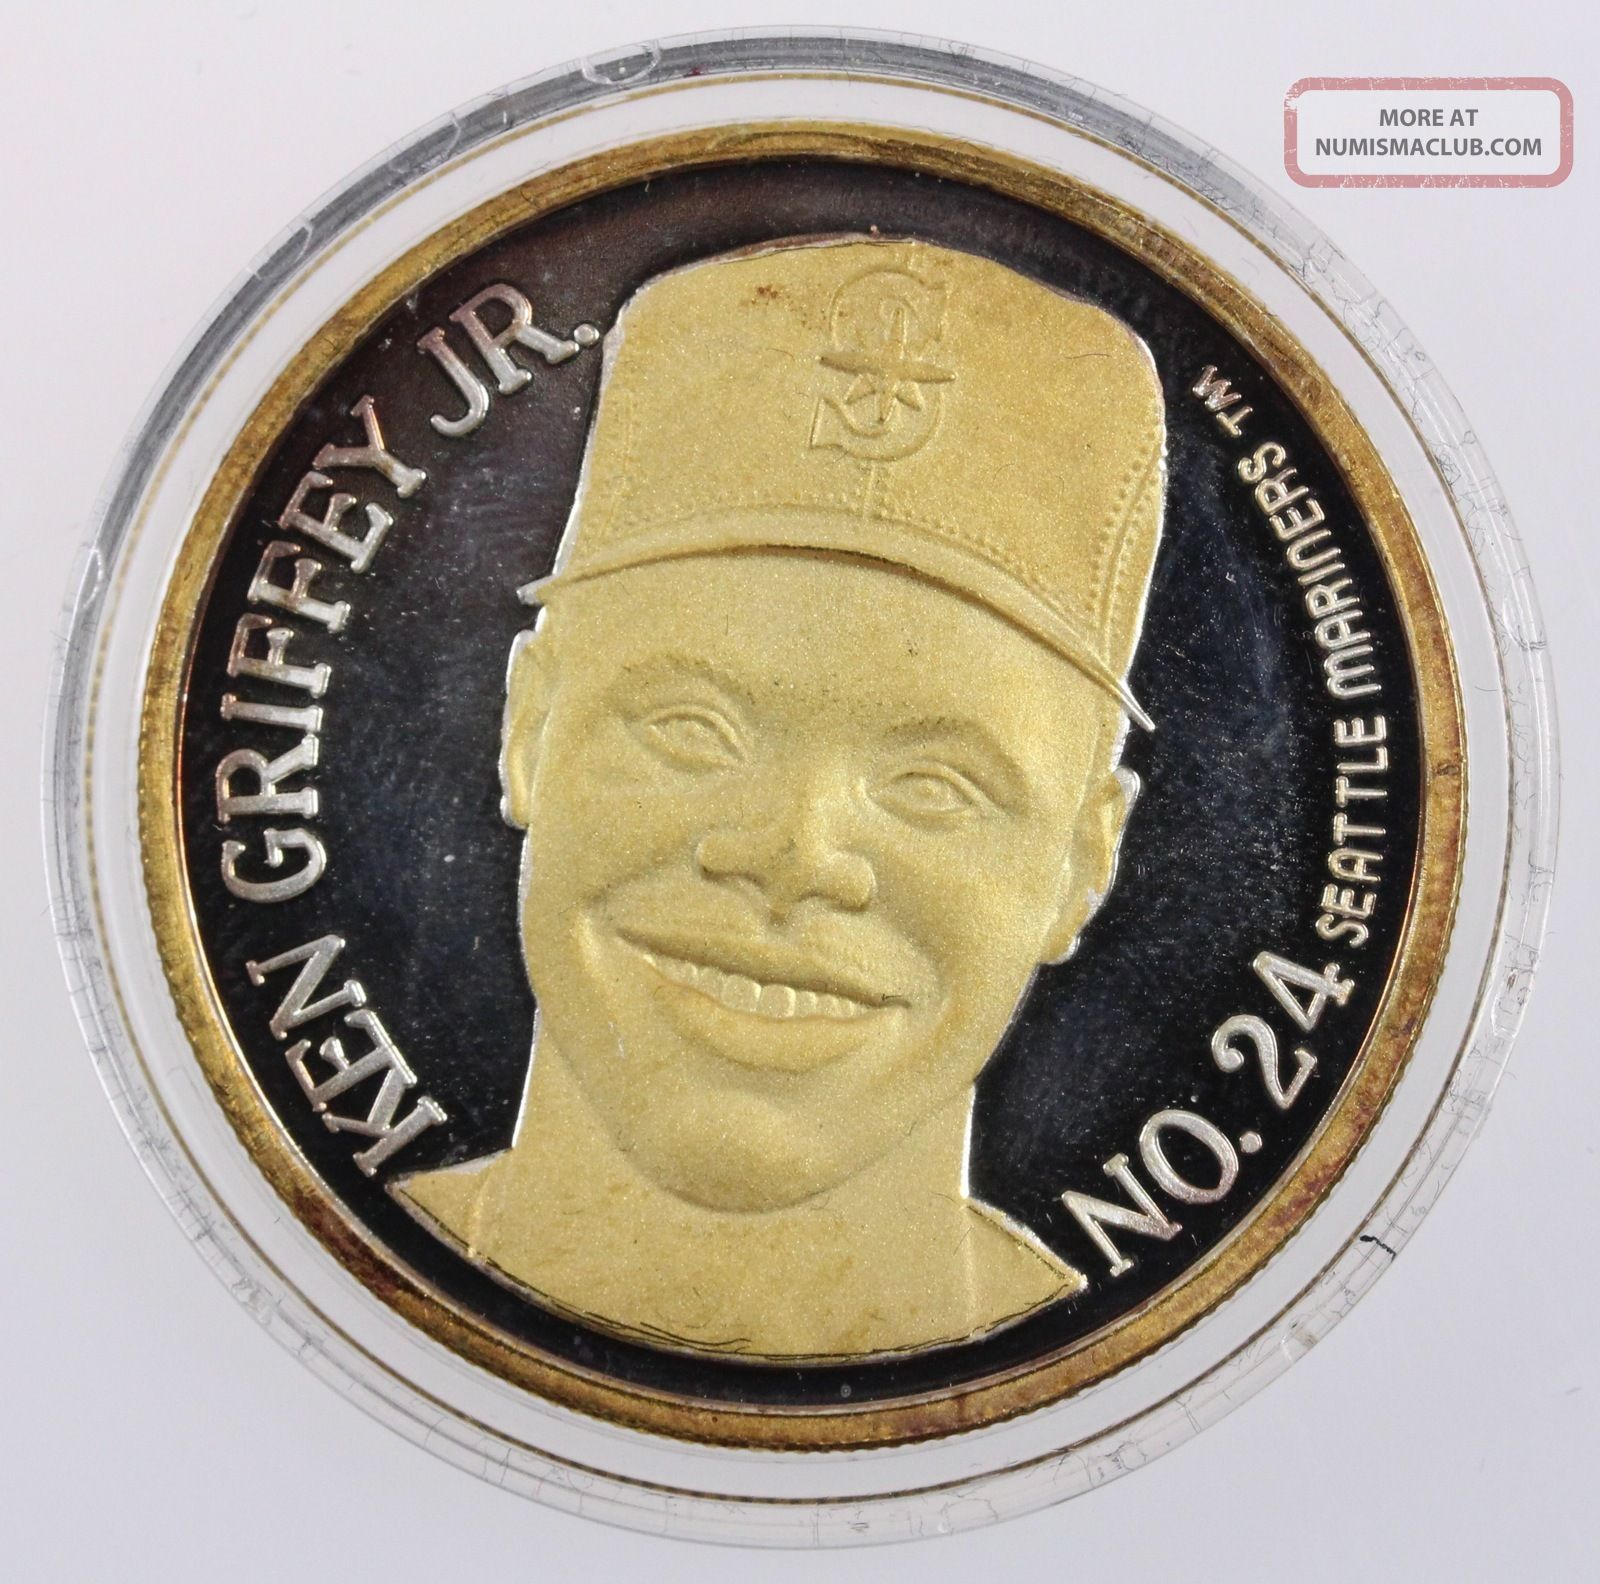 1995 Ken Griffey Jr Quot All Star Game Quot 1oz 999 Silver Round